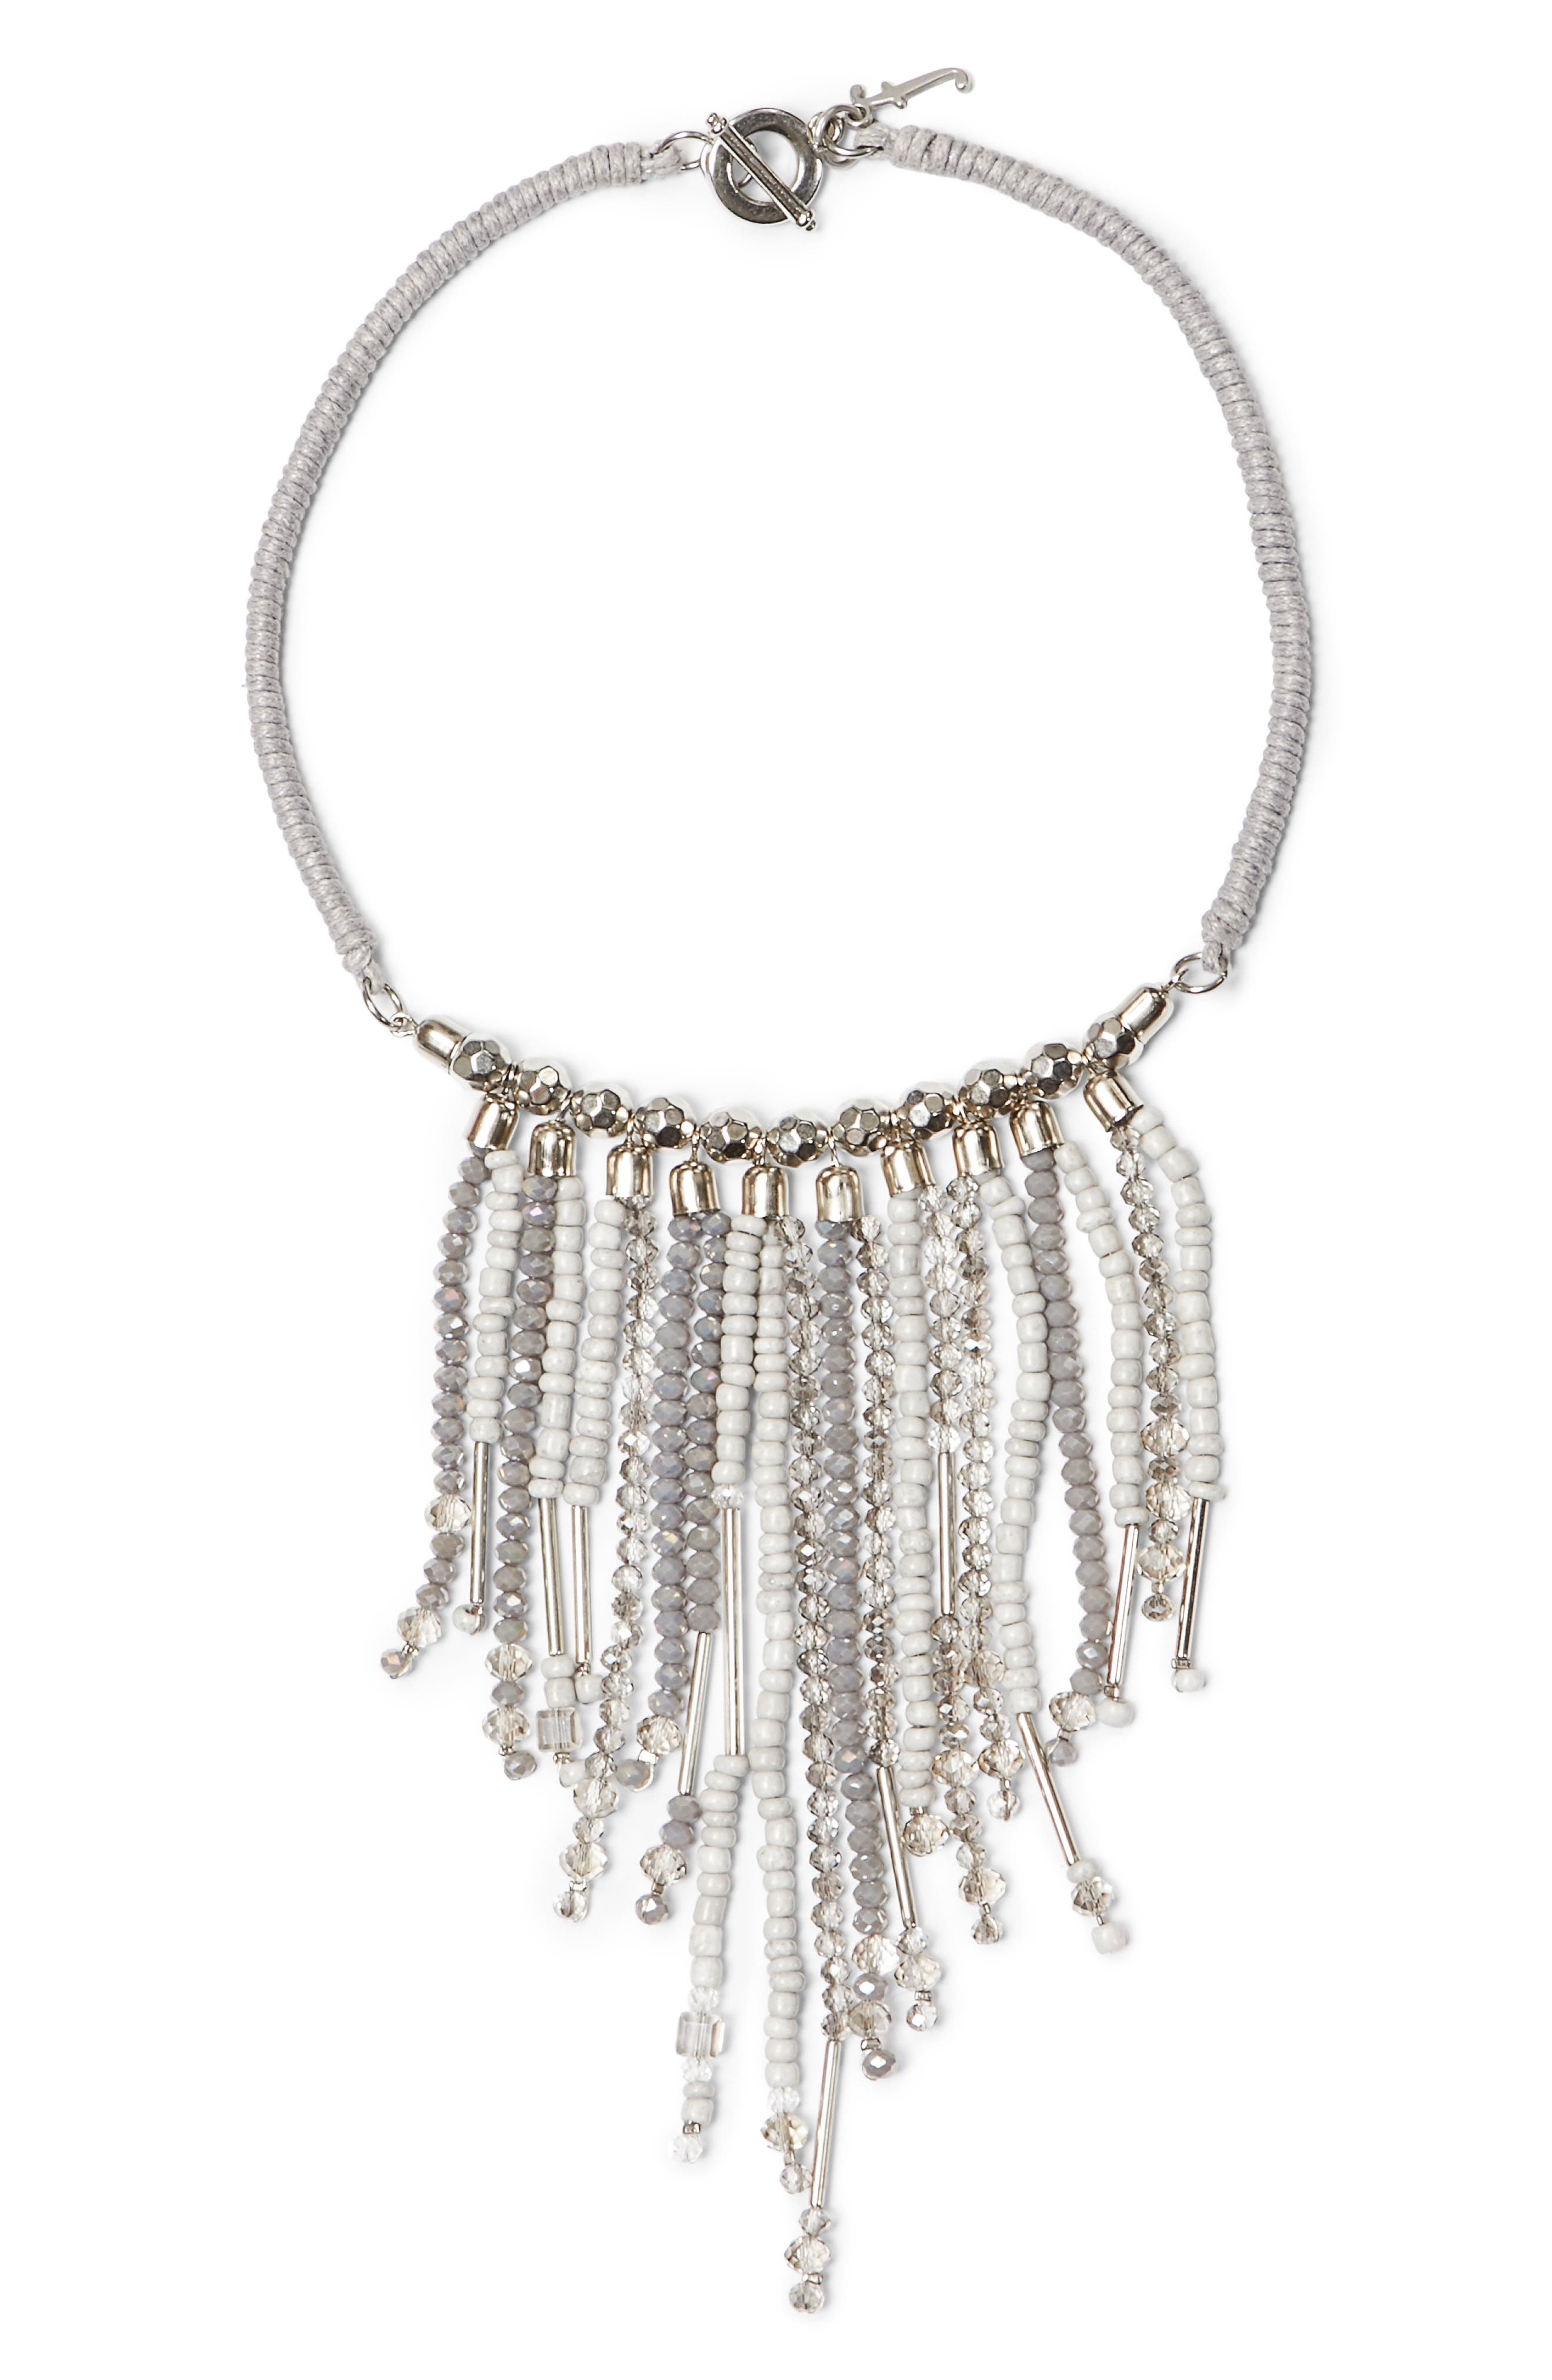 Beaded Fringe Necklace,                         Main,                         color, Silver Grey Multi